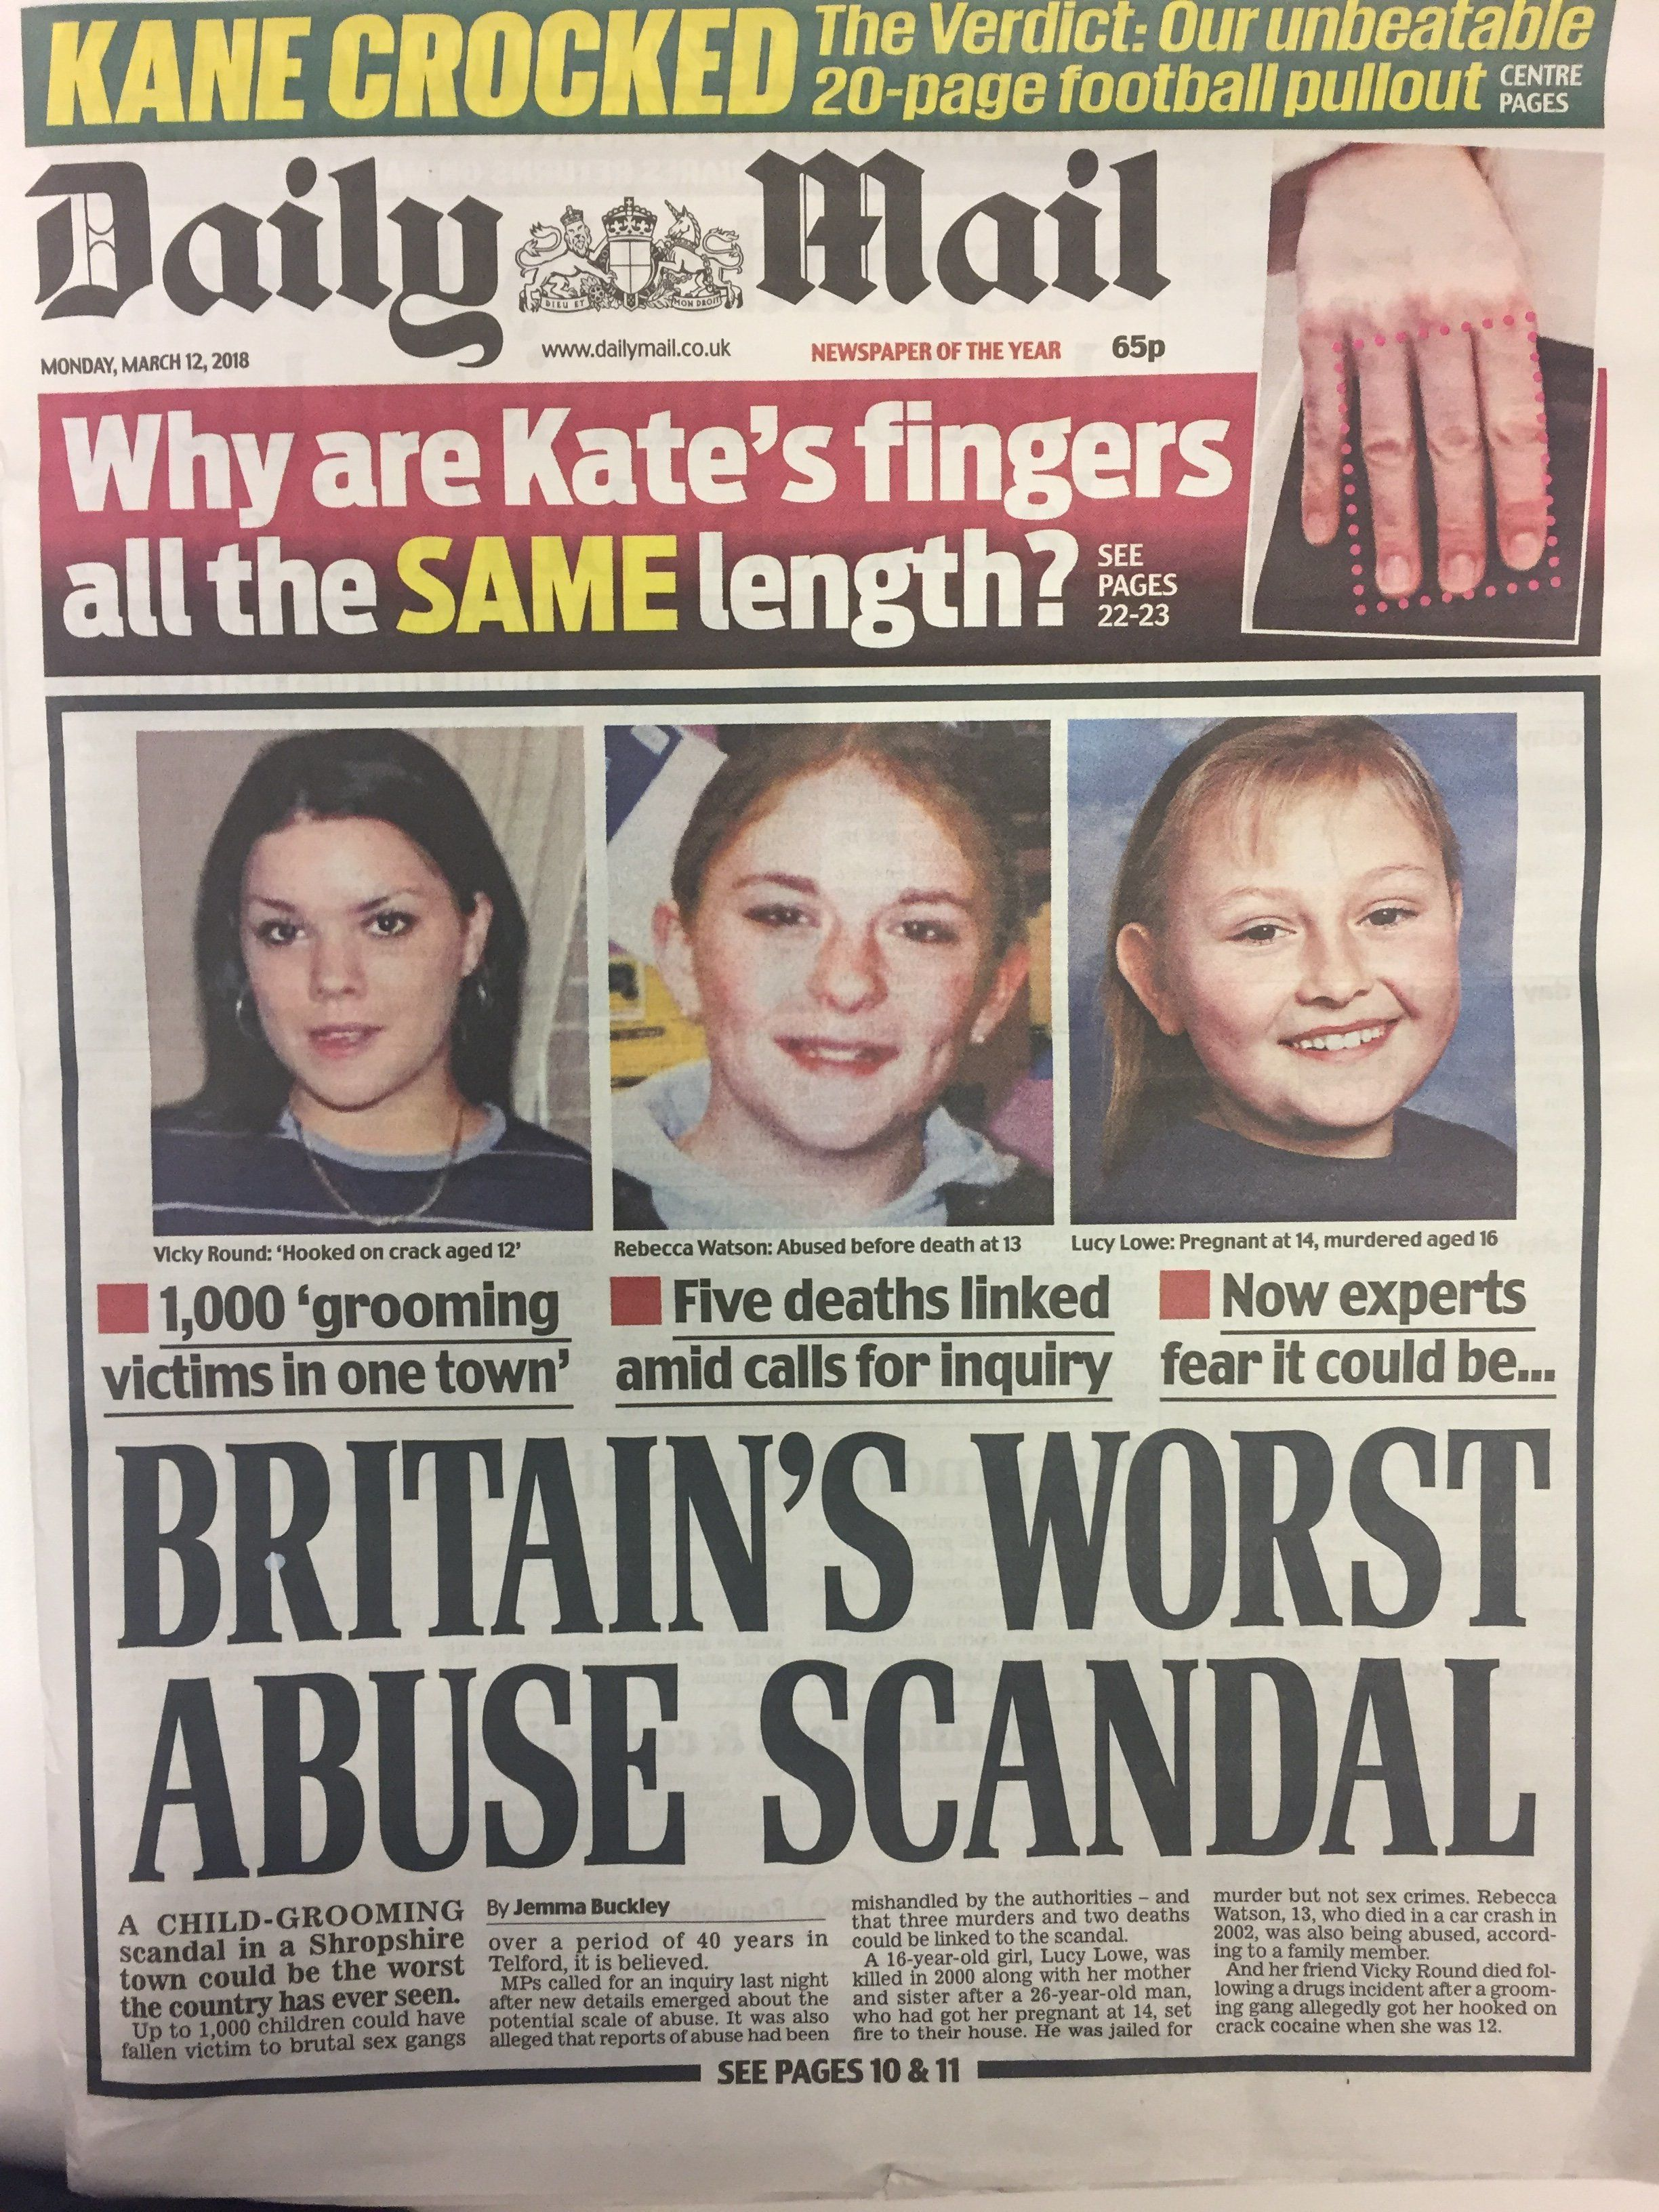 Daily Mail Makes Claim About Kate's Fingers – Then Proves It's Not True In One Glorious Front